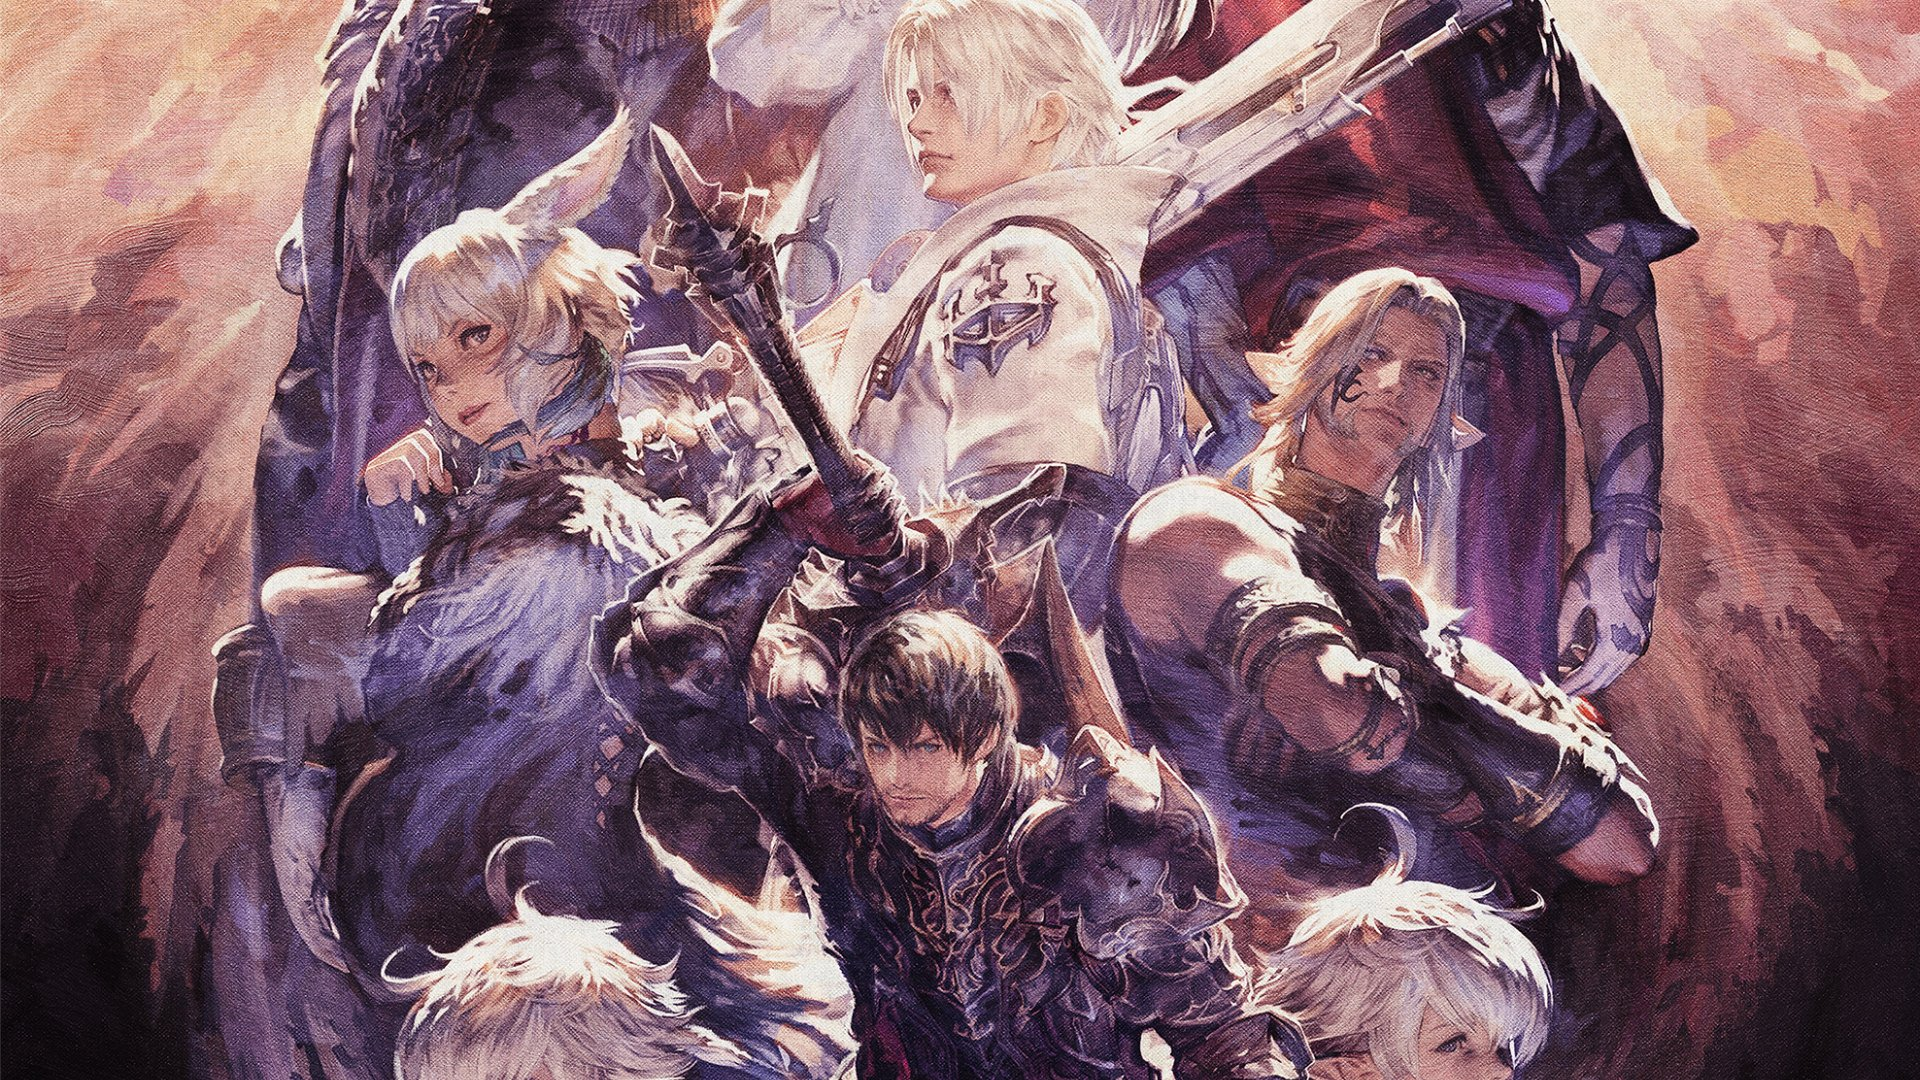 Final Fantasy XIV boss shares lessons learned and how they're aiming to make Shadowbringers 'the best expansion yet' screenshot